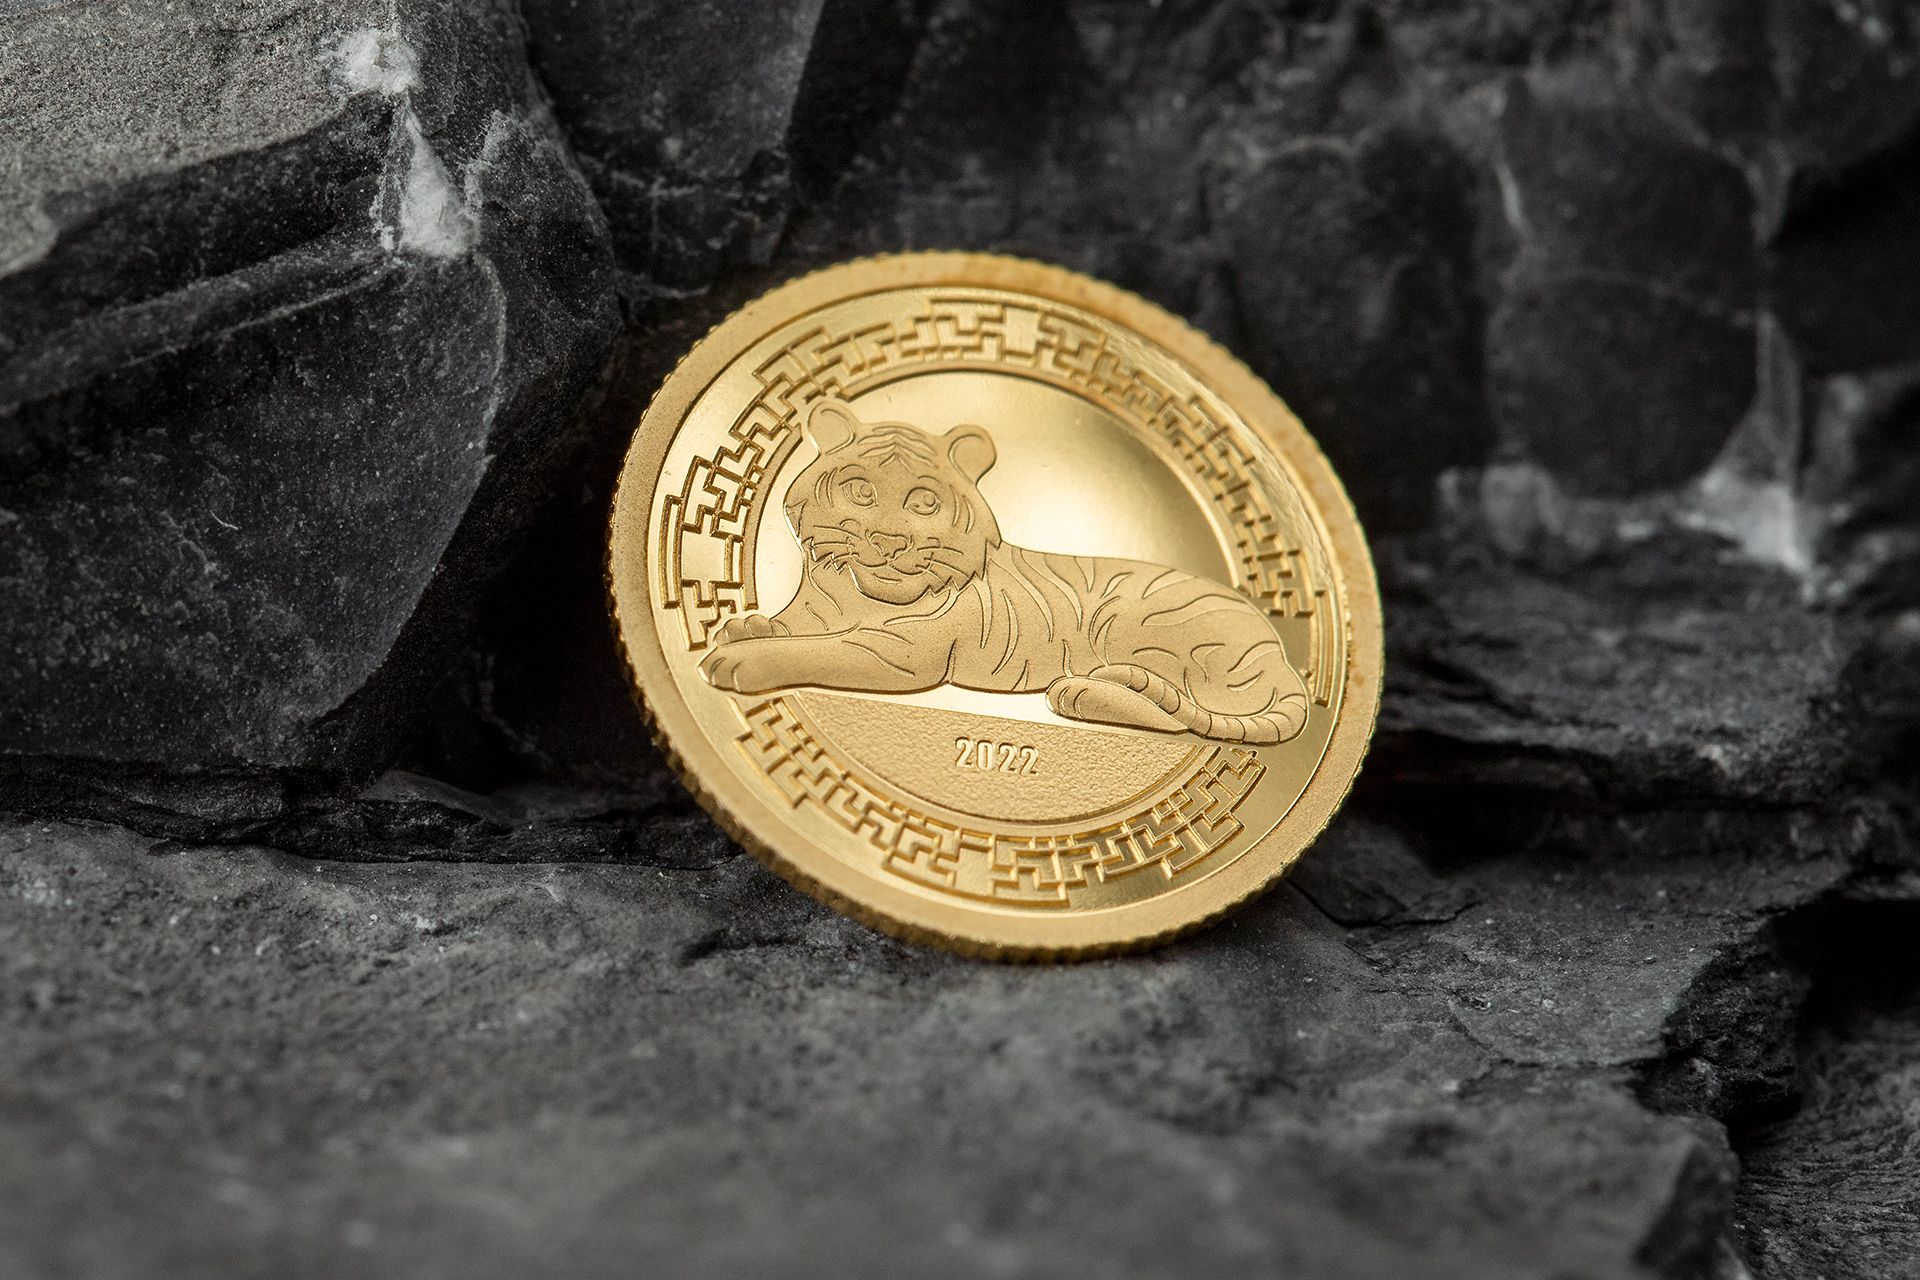 2022 Lunar Year Series Year of the Tiger .5g Gold Coin